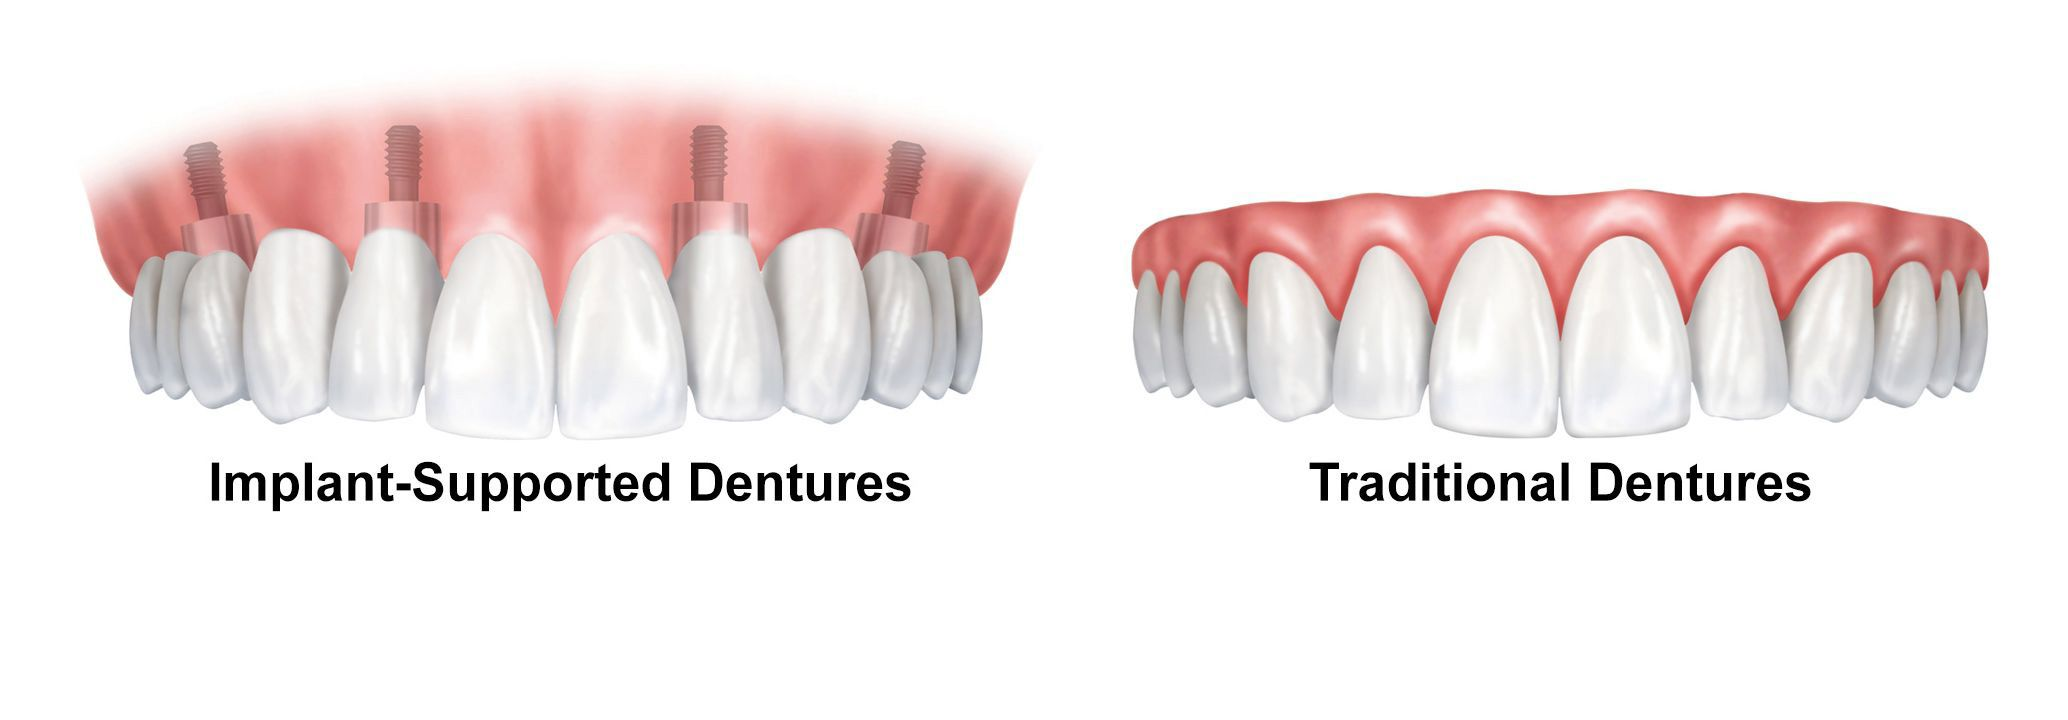 An illustration of implant-supported dentures next to traditional dentures